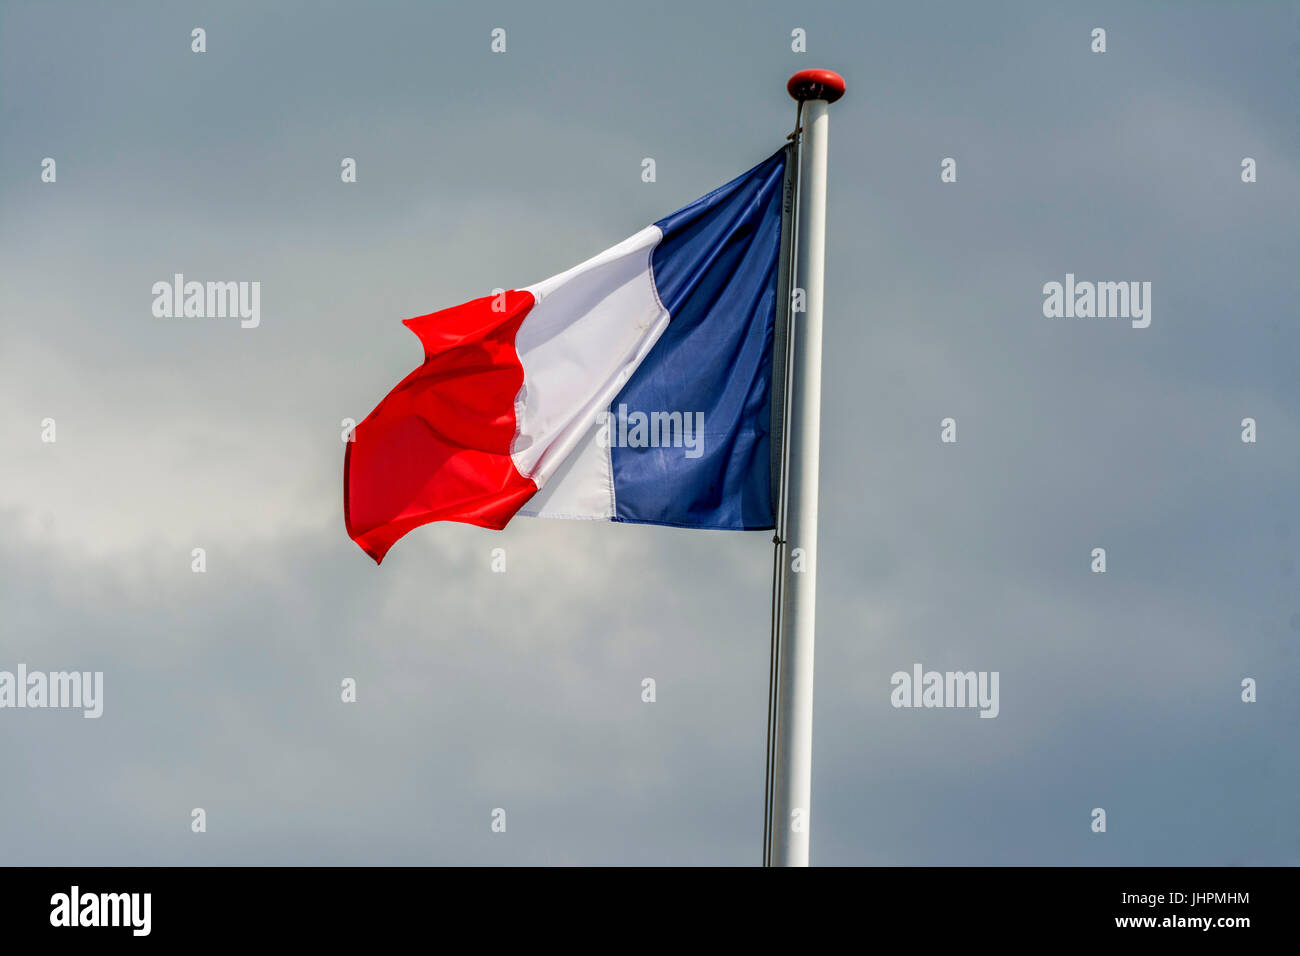 French flag - Stock Image